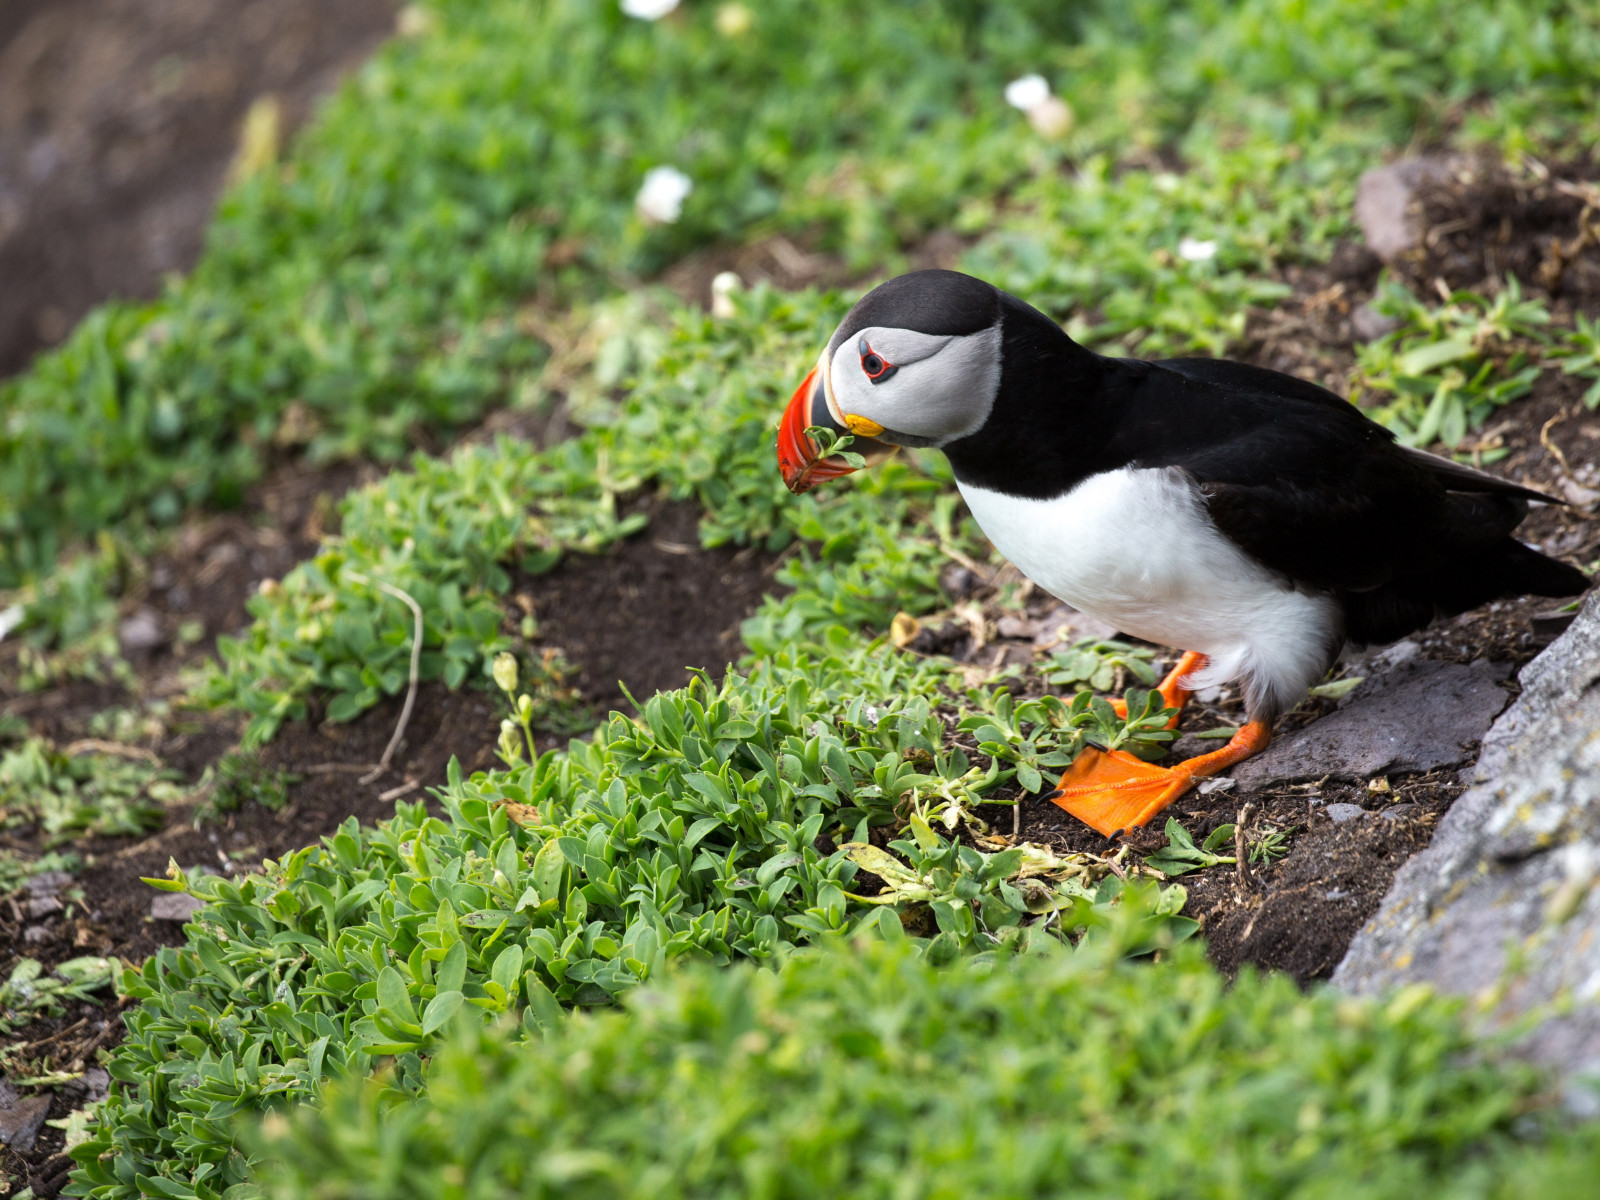 Puffin in Ireland wallpaper 1600x1200